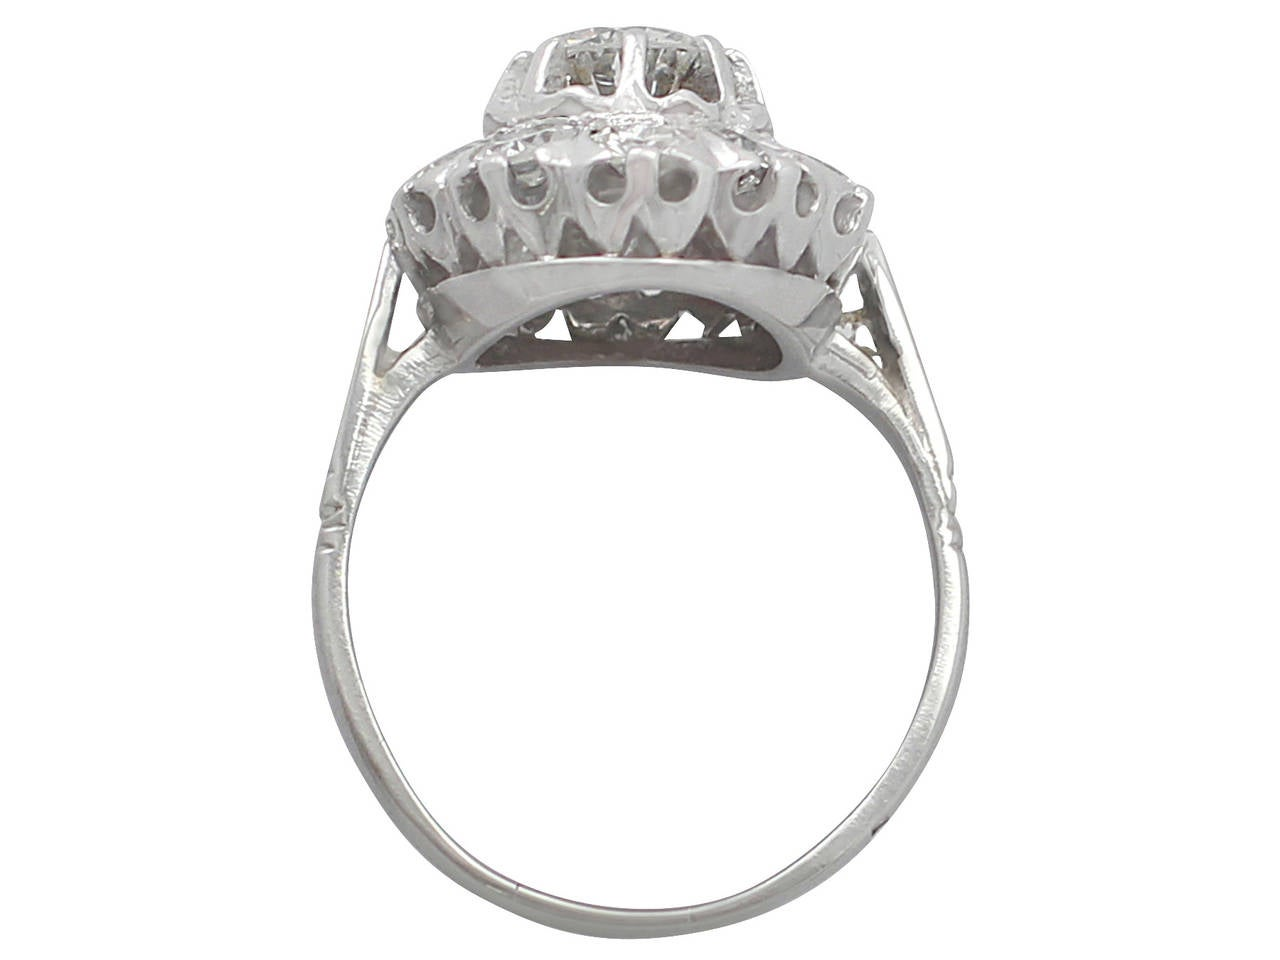 Women's 1.35Ct Diamond and 18k White Gold Cluster Ring - Vintage Circa 1950 For Sale